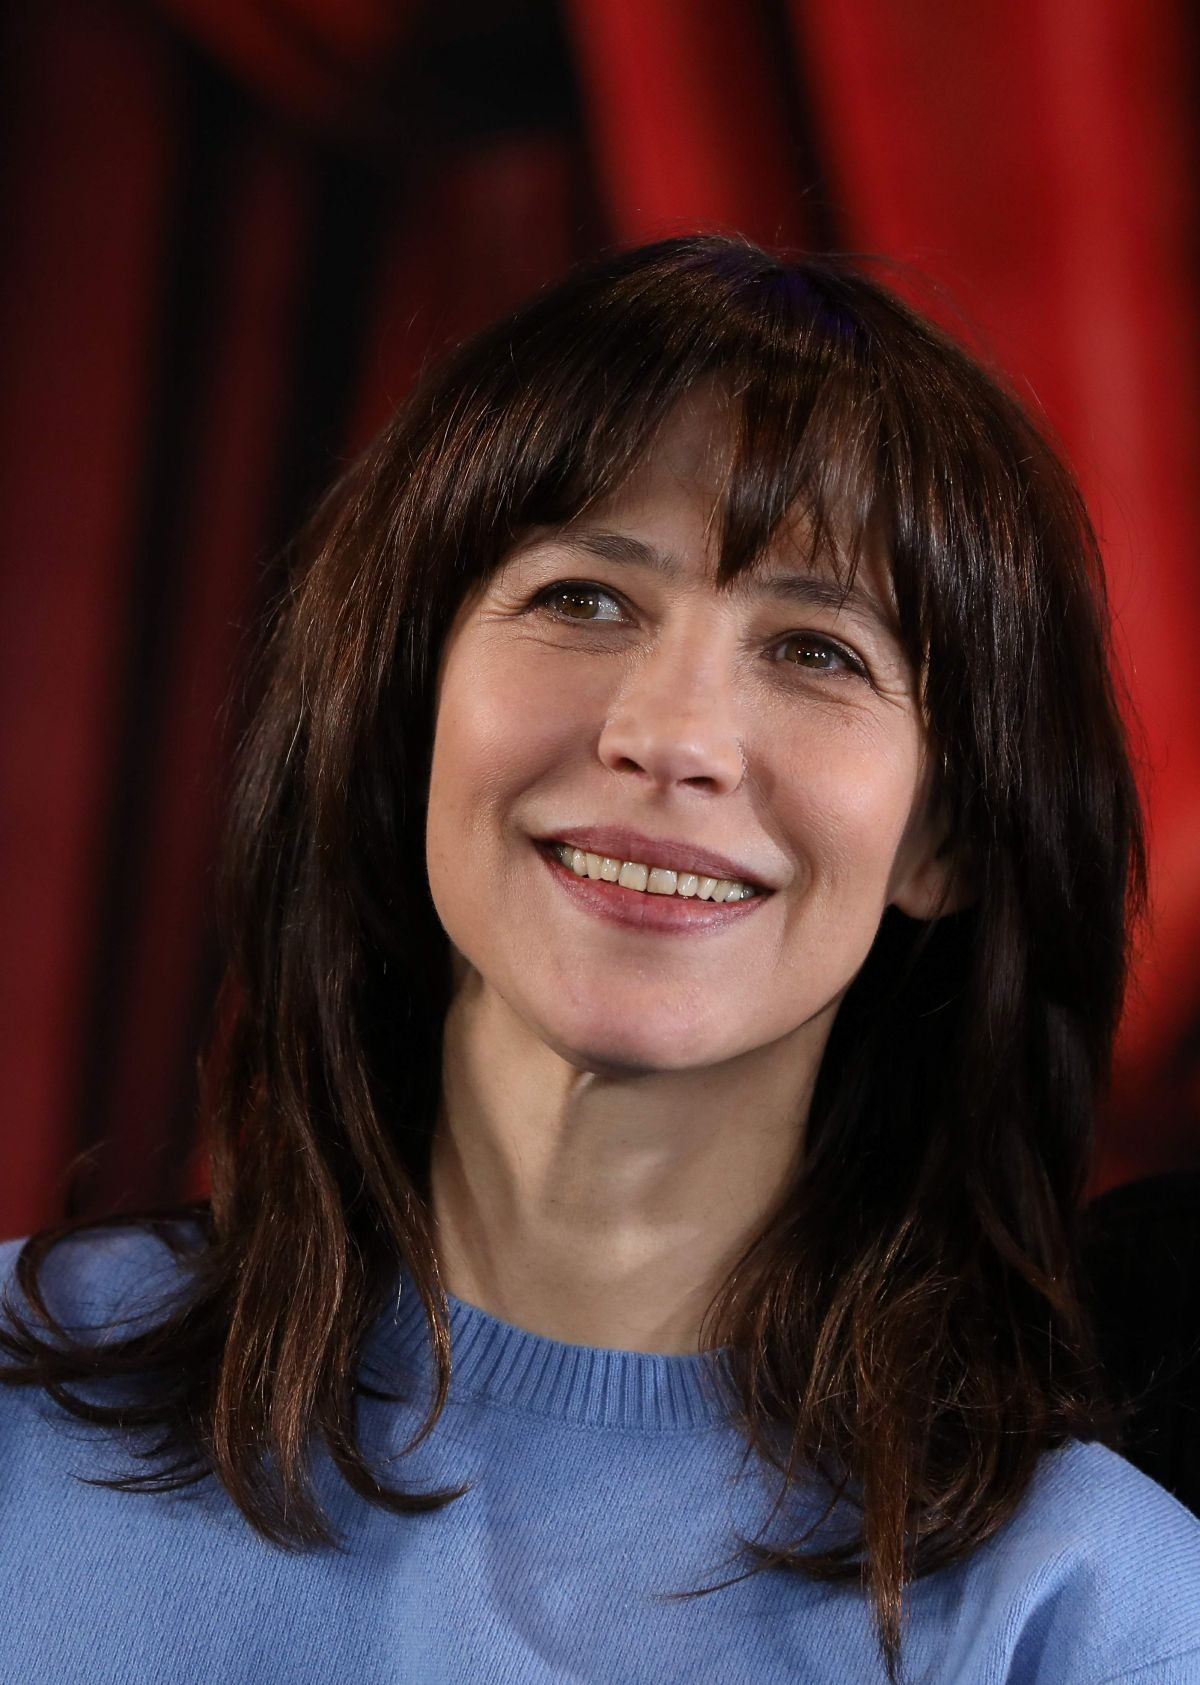 Paparazzi Sophie Marceau nudes (15 foto and video), Pussy, Leaked, Boobs, in bikini 2017